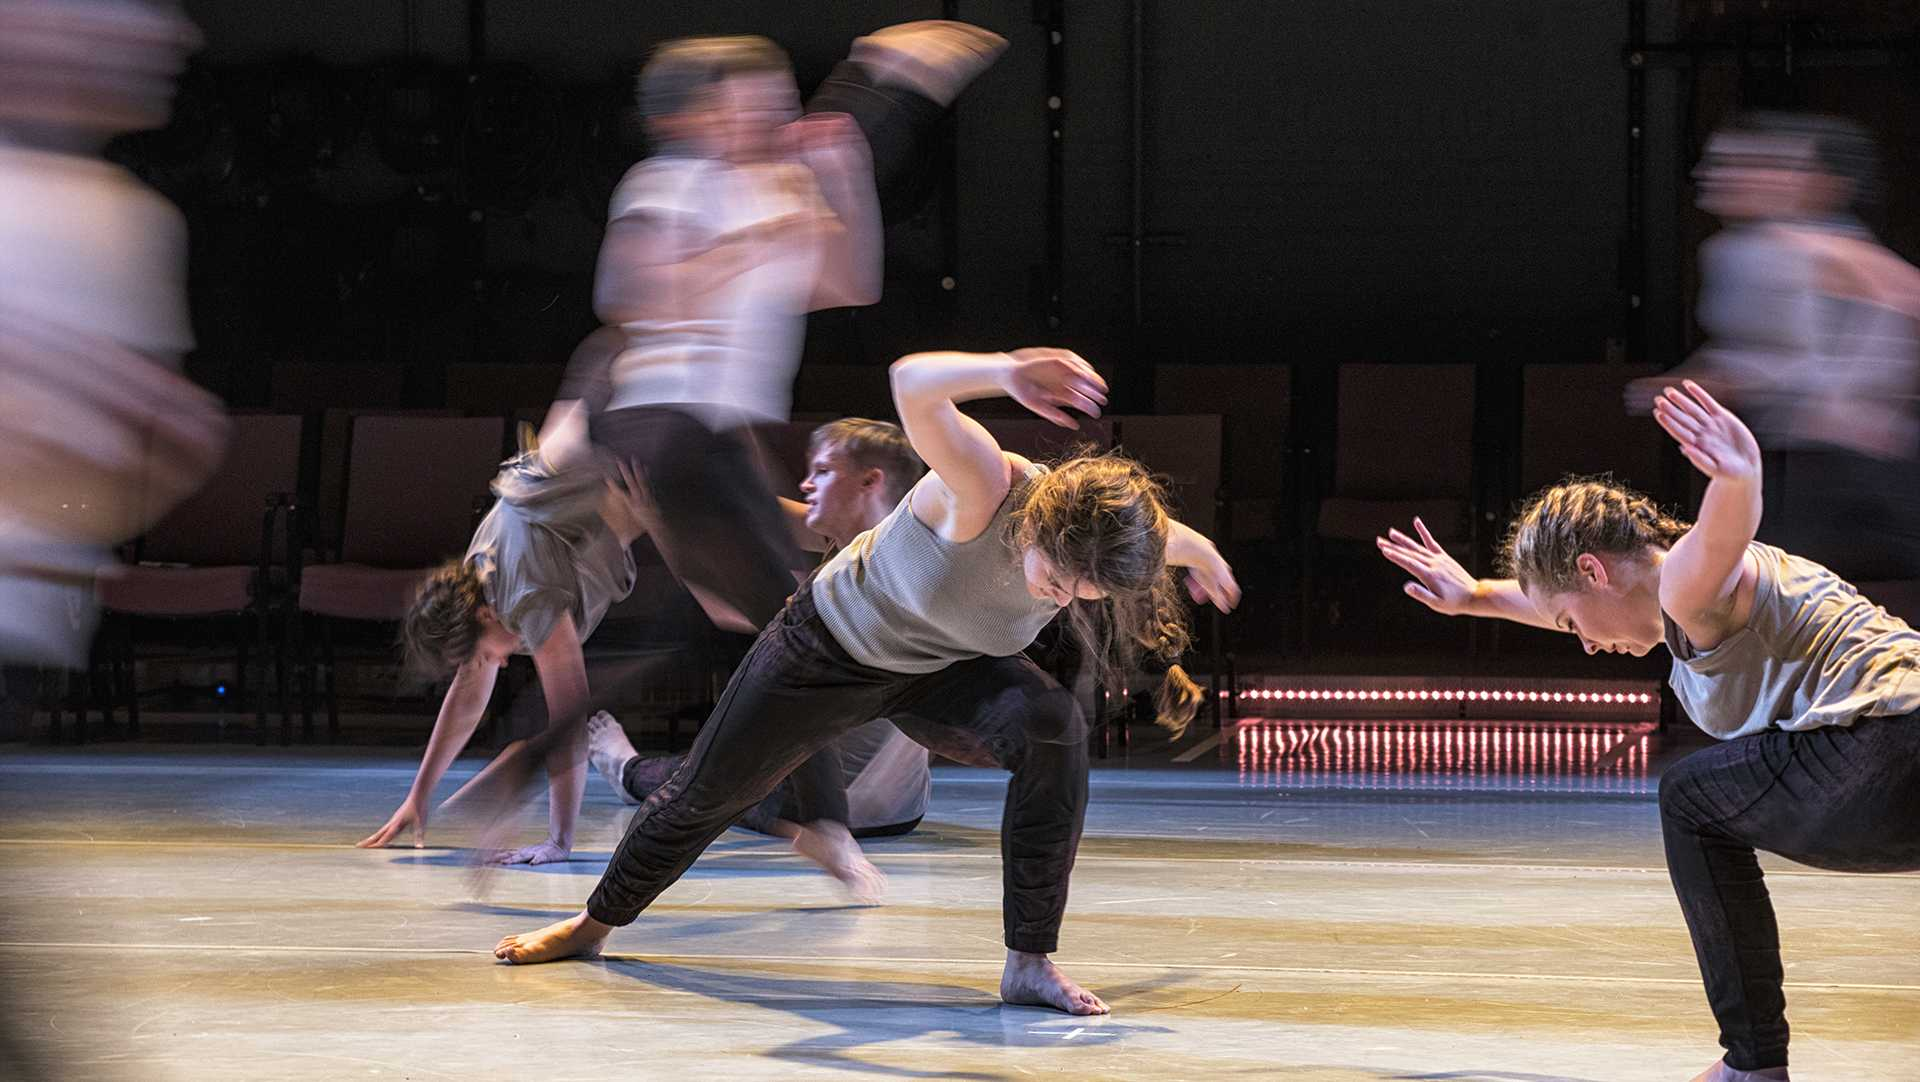 The University of Iowa Dancers in Company put on a performance of Collective Energies at Space Place Theater on Monday, Feb. 19, 2018. (Ben Allan Smith/The Daily Iowan)